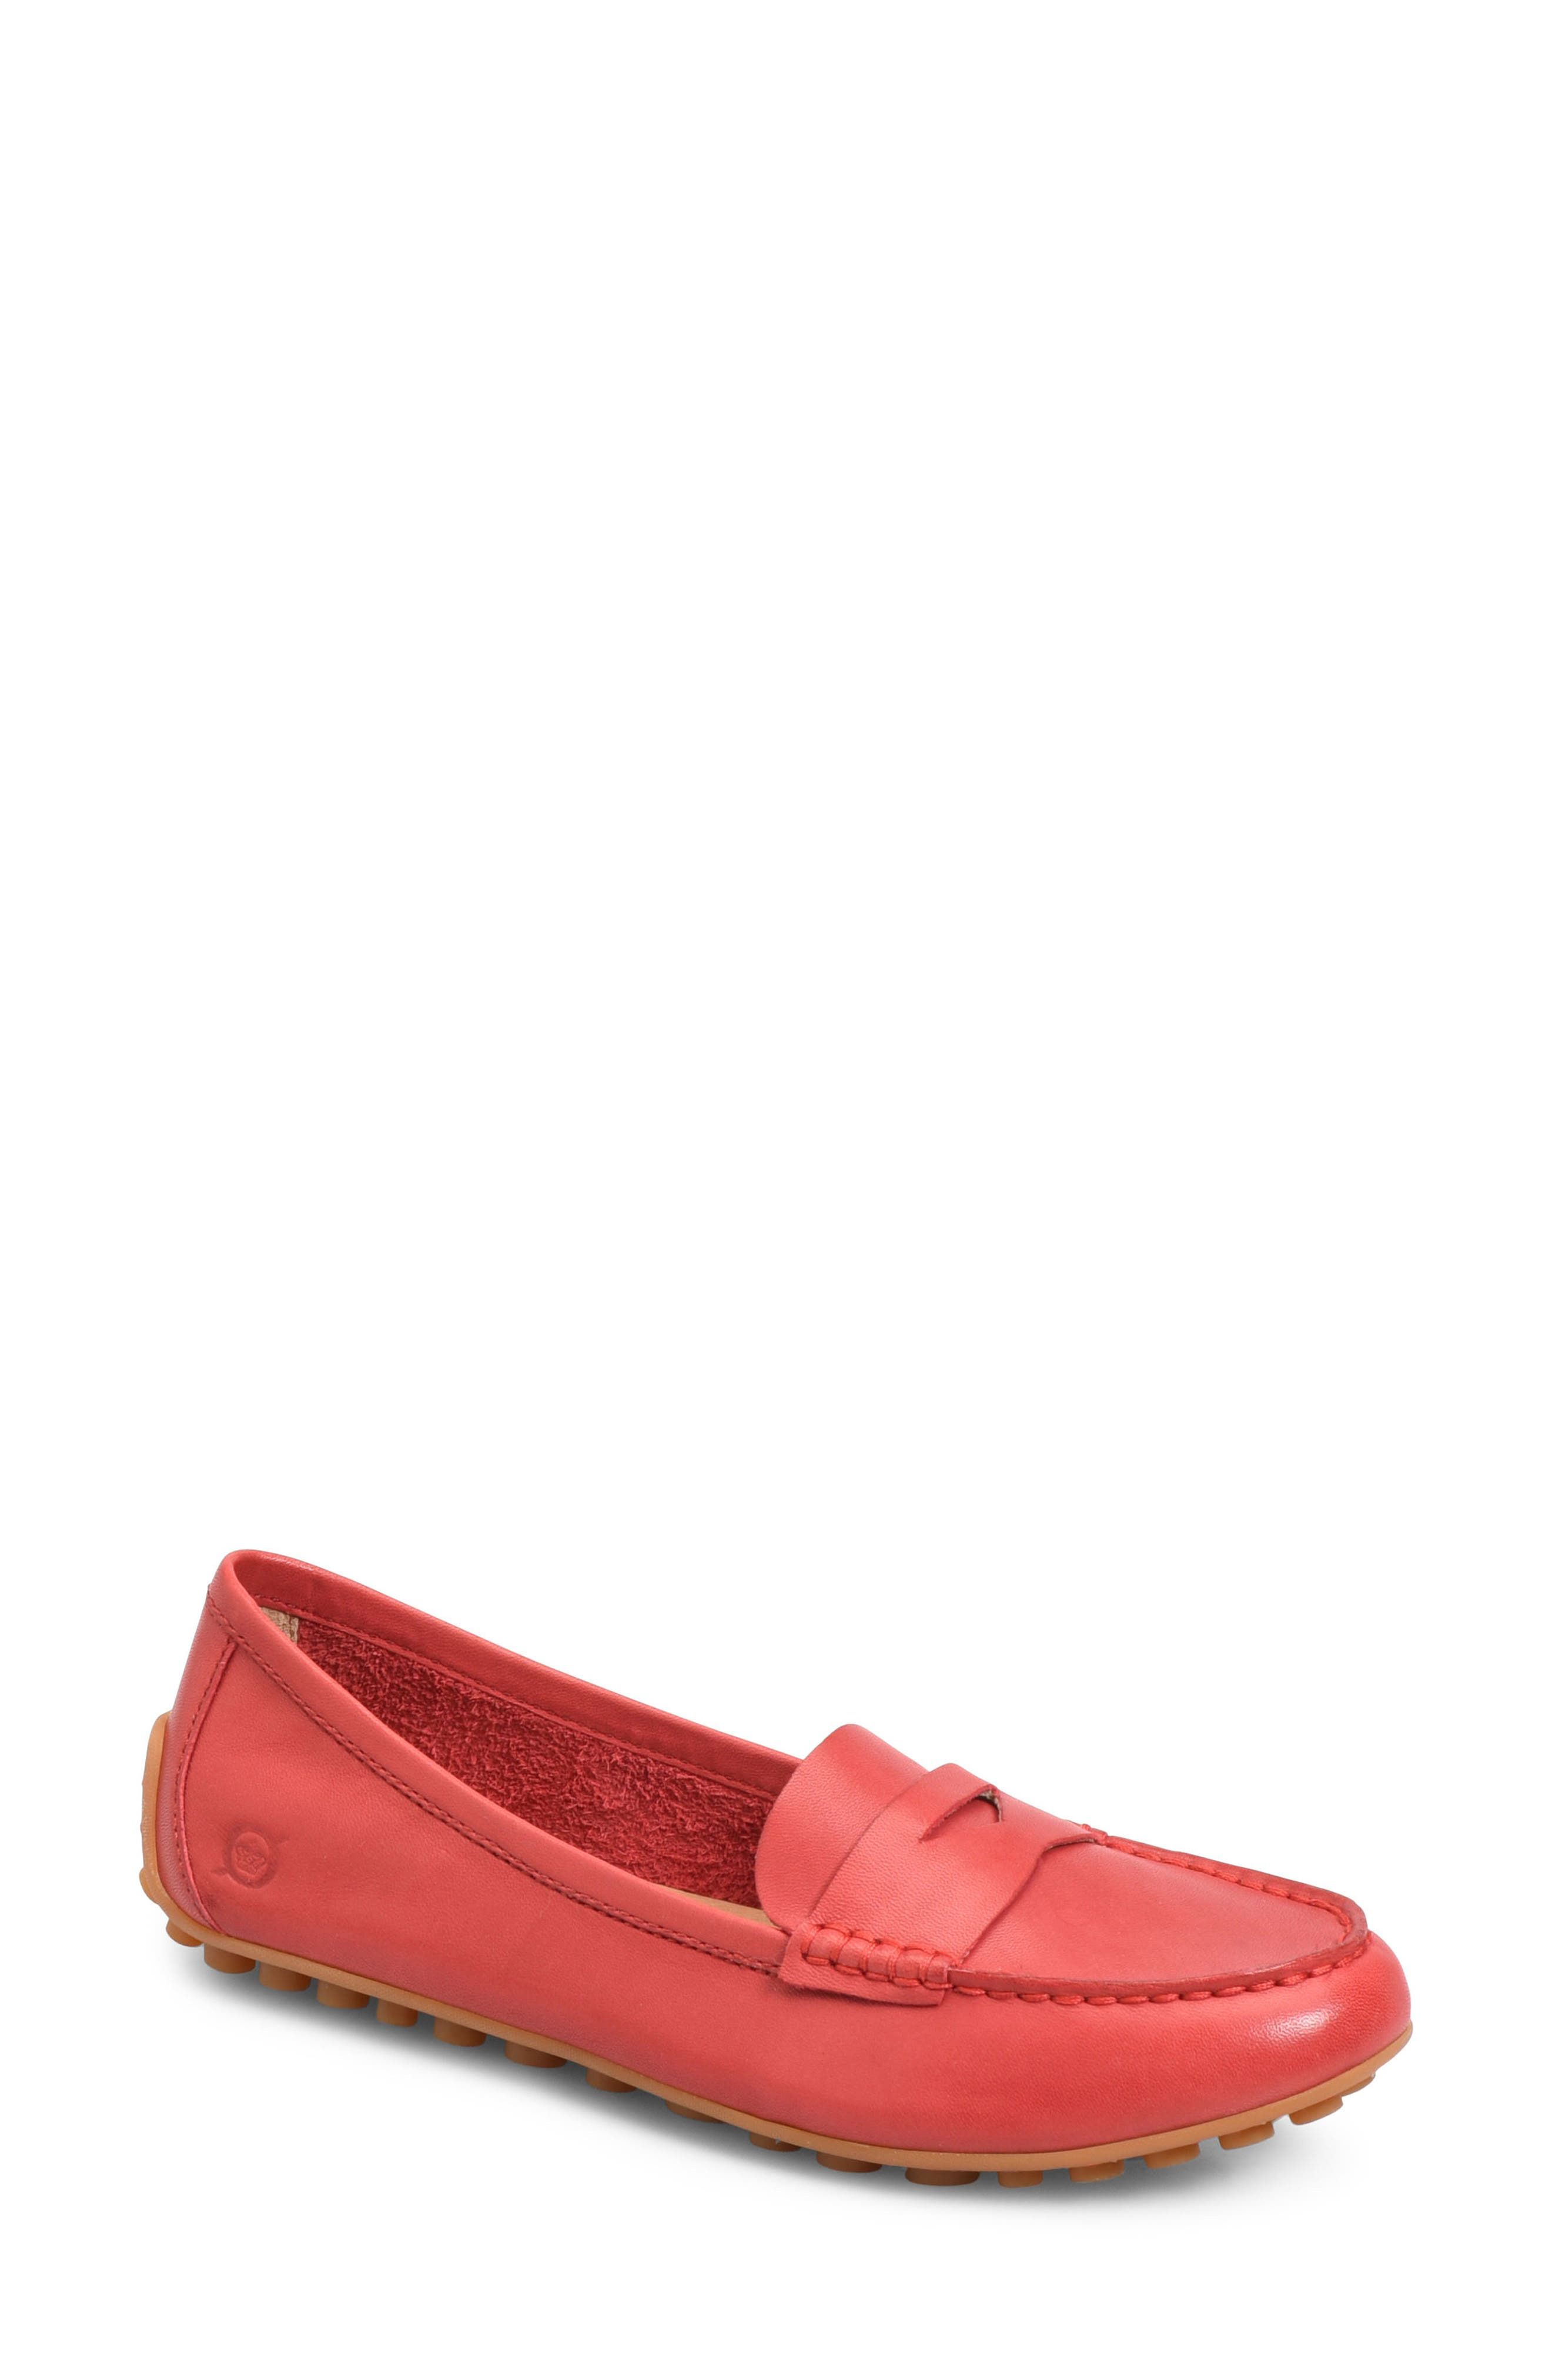 Malena Driving Loafer,                             Main thumbnail 1, color,                             RED LEATHER